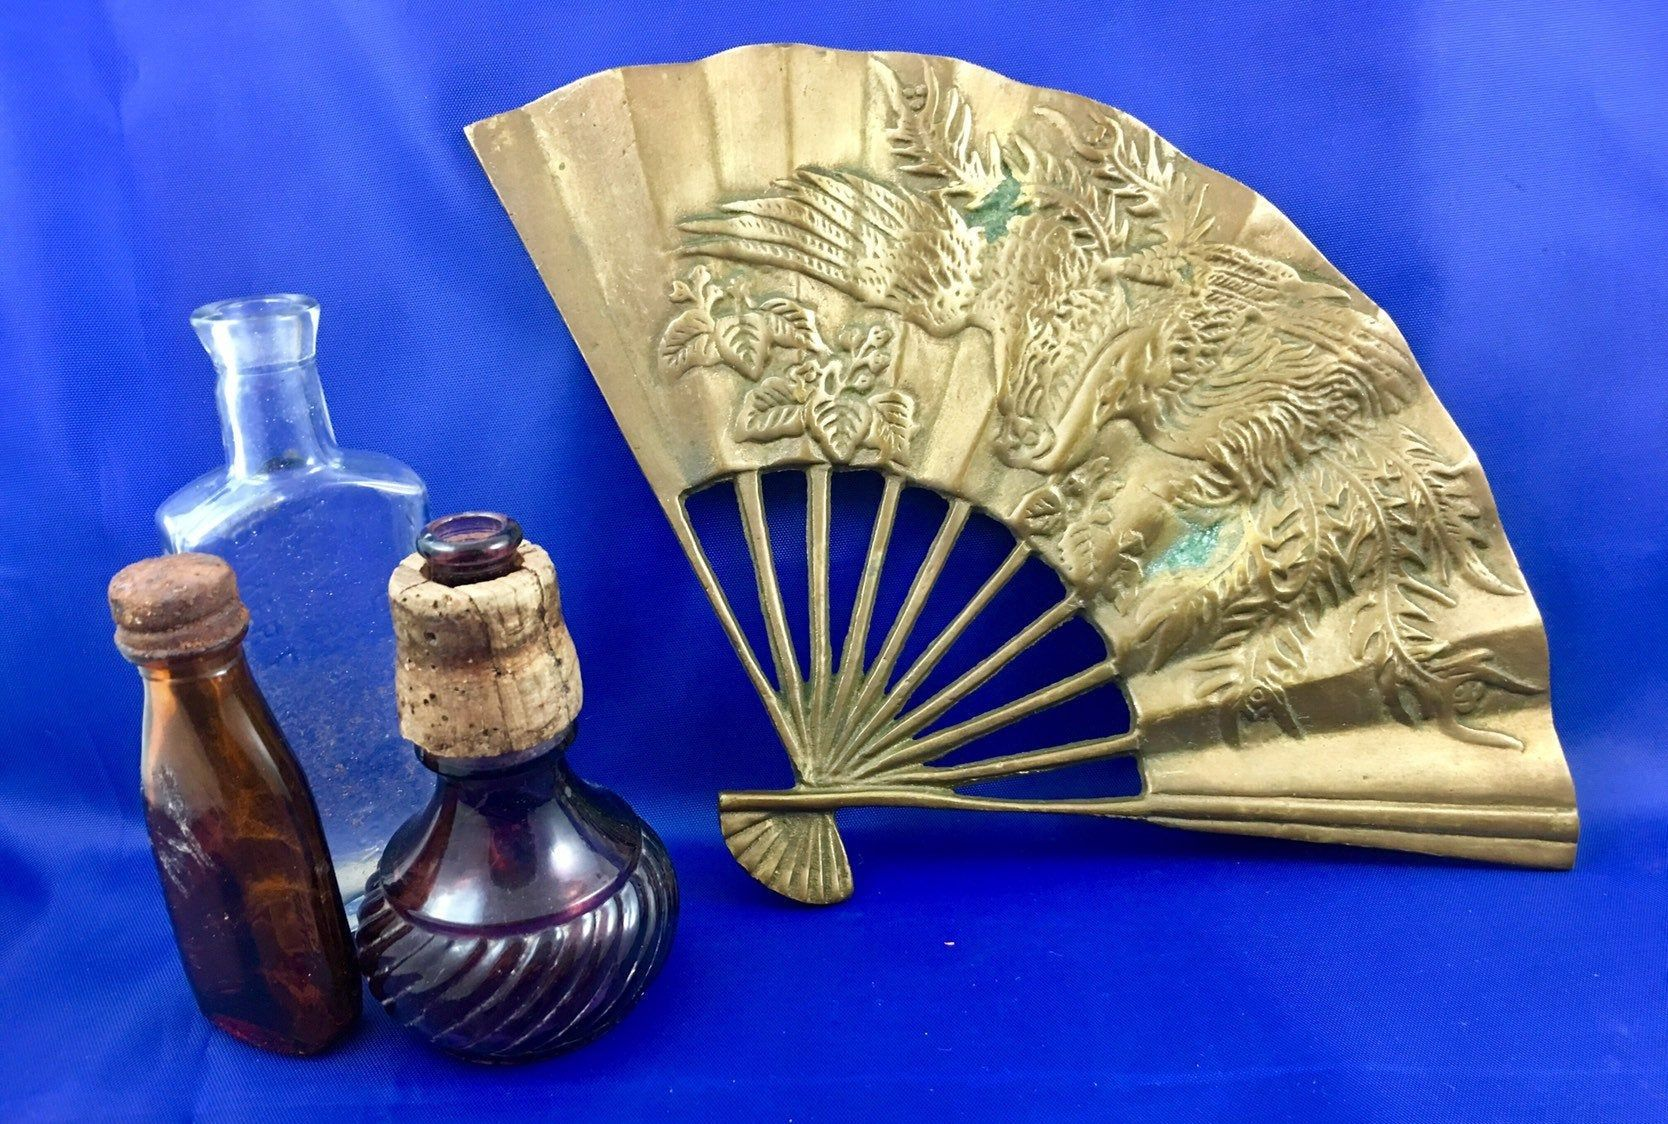 Vintage Brass Oriental Decorative Fan Wall Hanging Griffins And Dragons Room Decor Mid Century Asian Solid Brass Figurine Fan Decoration Wall Fans Vintage